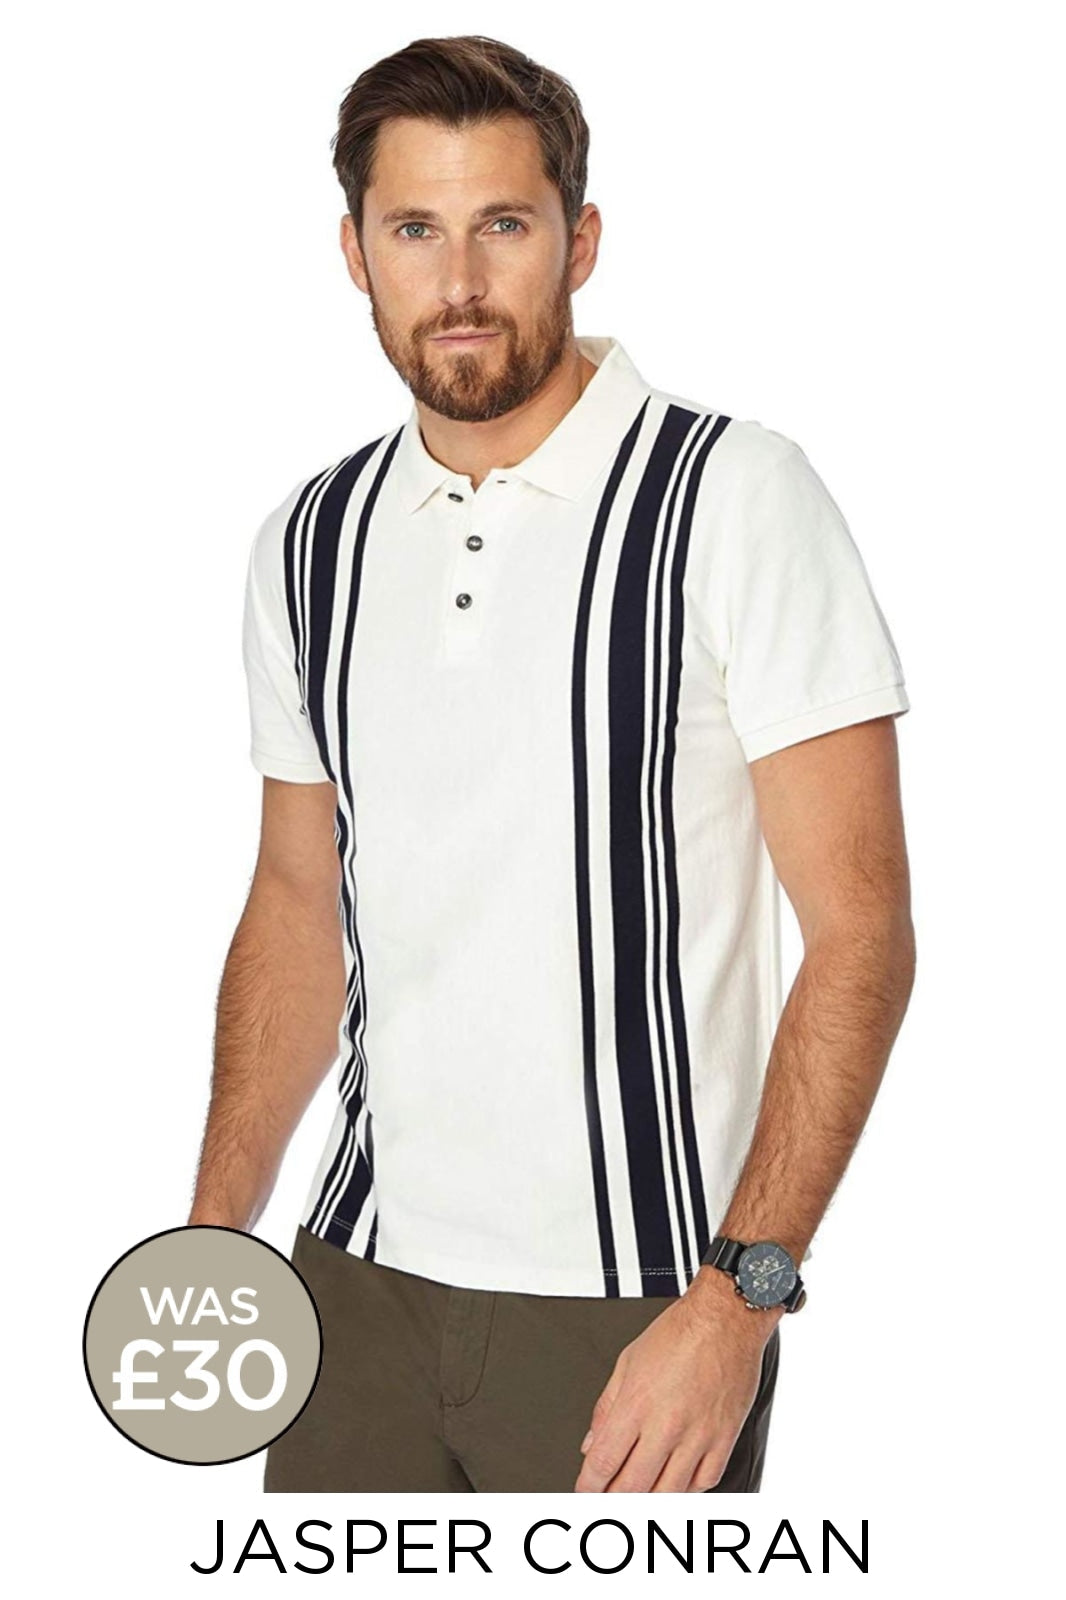 Jasper Conran Ex Jasper Conran Stripe Polo Shirt | 2XL / Ivory/Black Secret Label